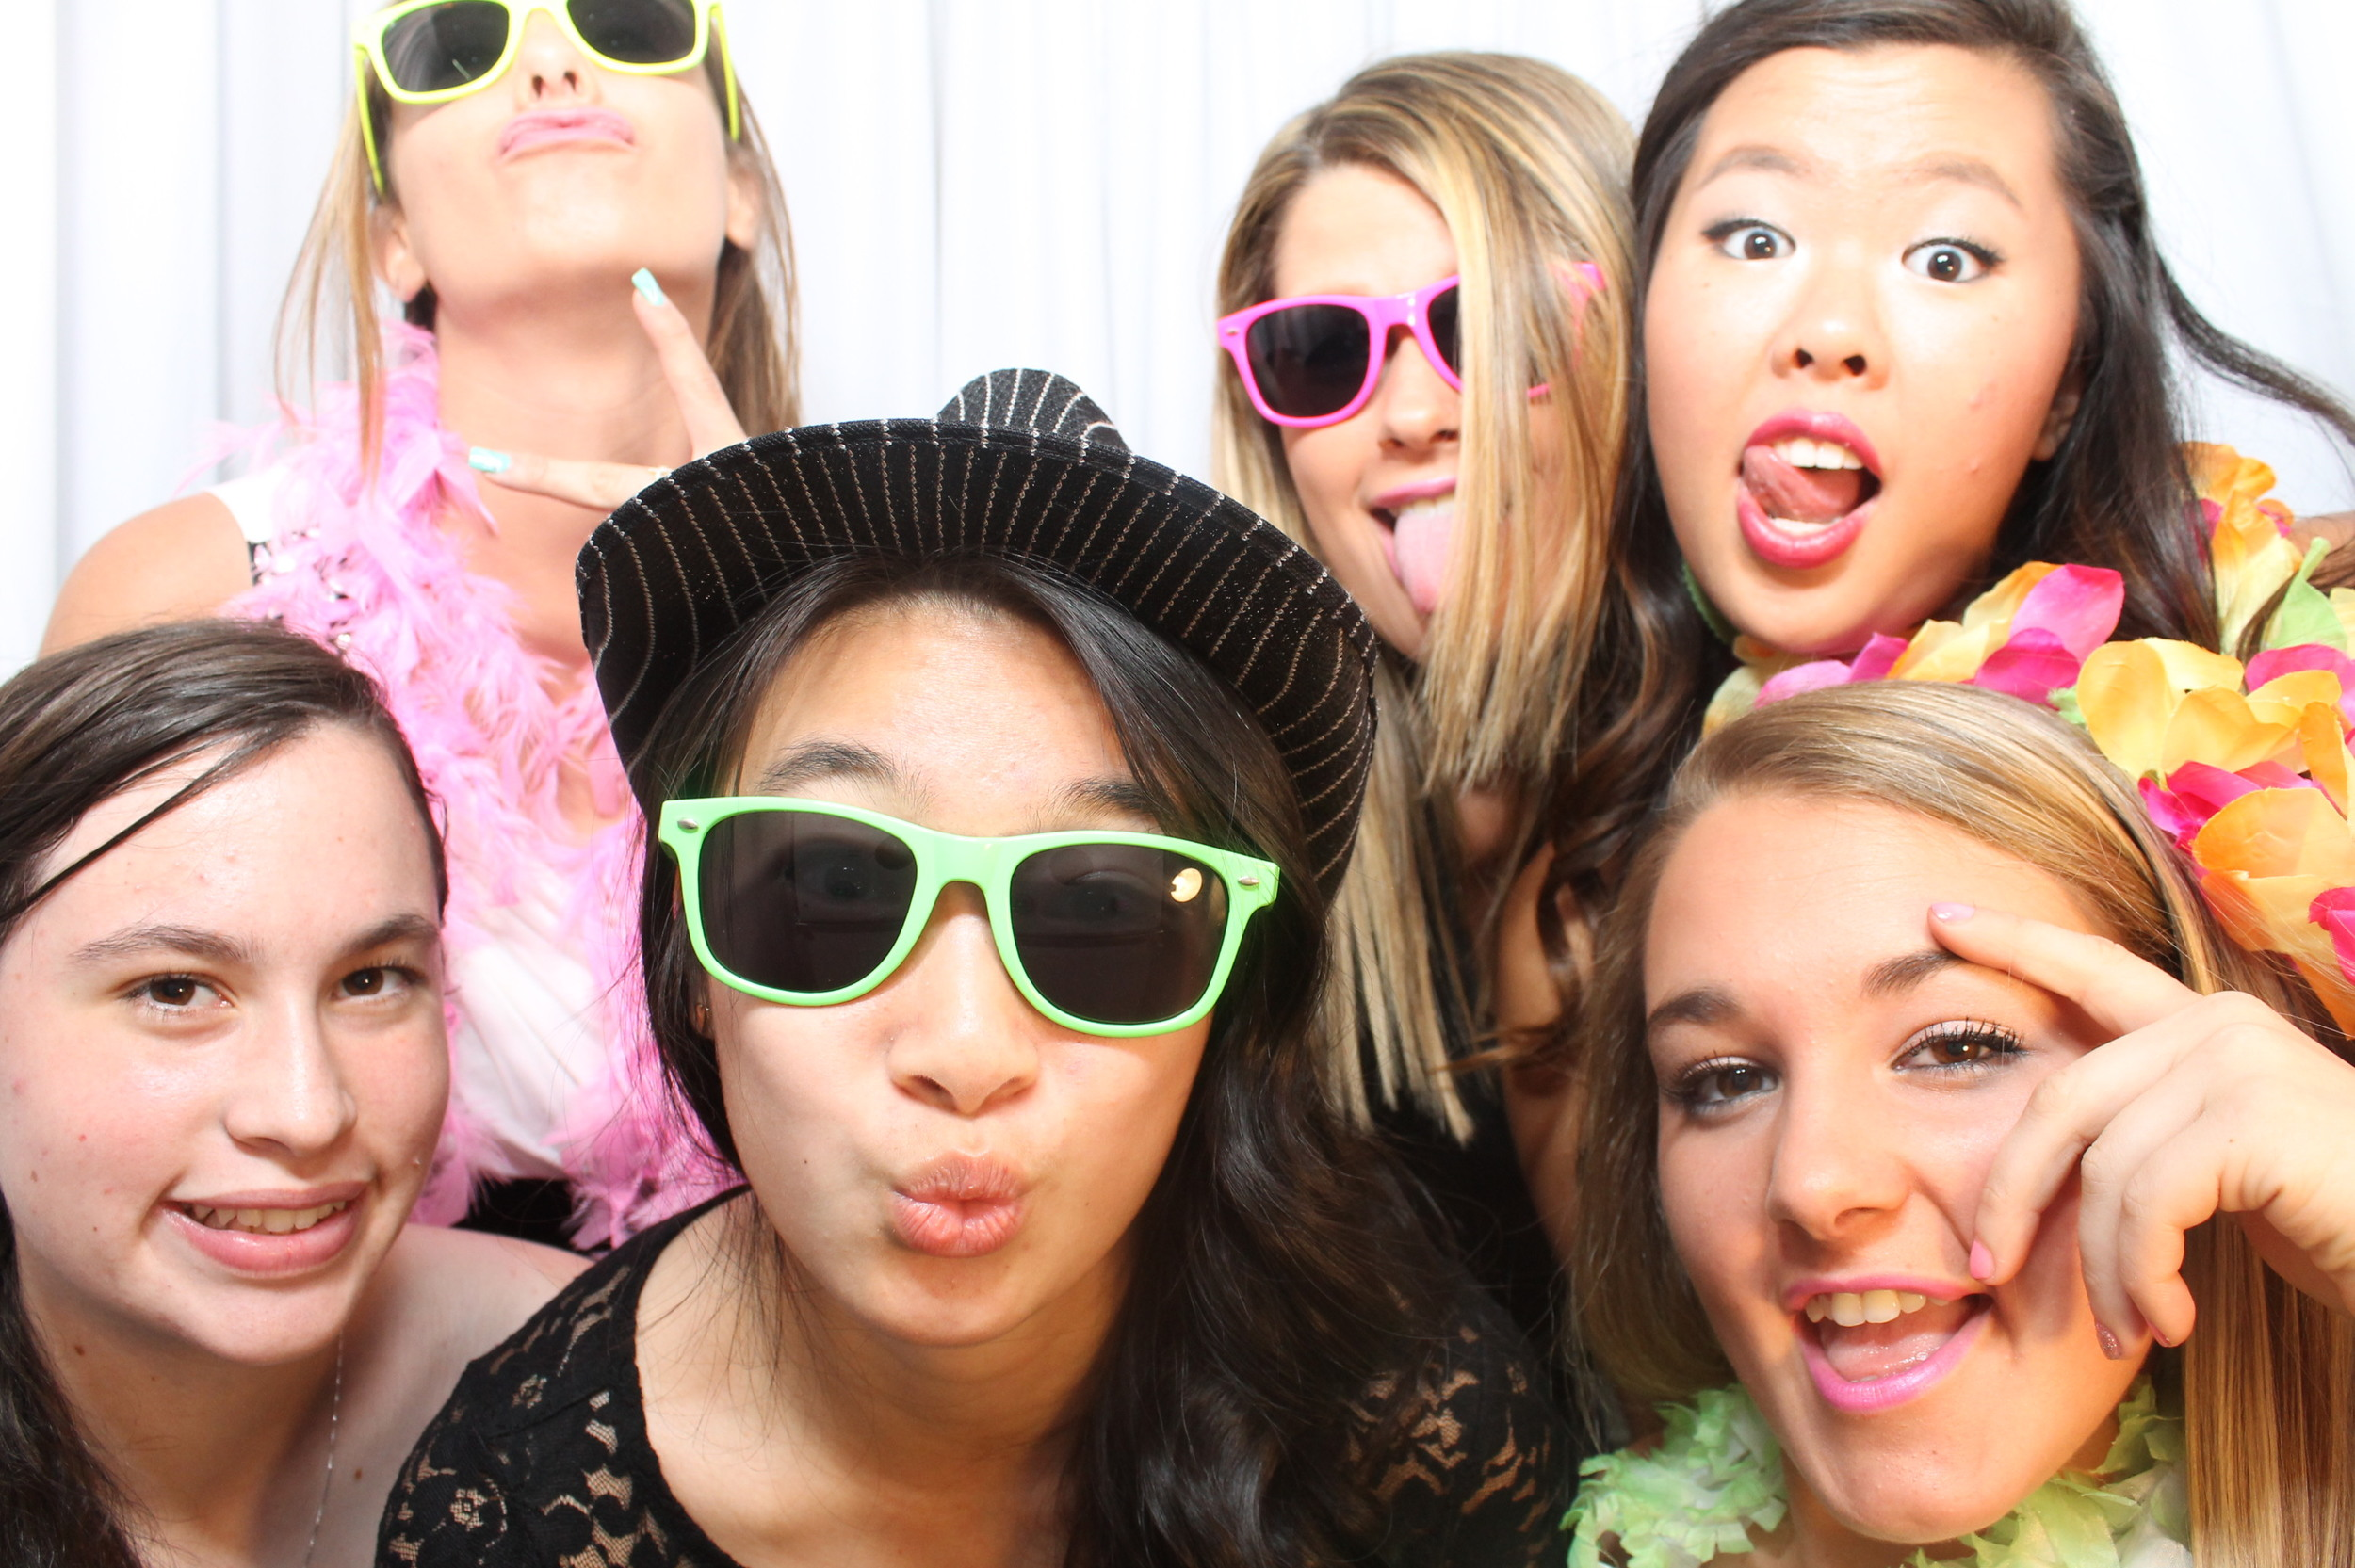 Snapshot Photobooths at the DoubleTree in Tinton Falls, New Jersey